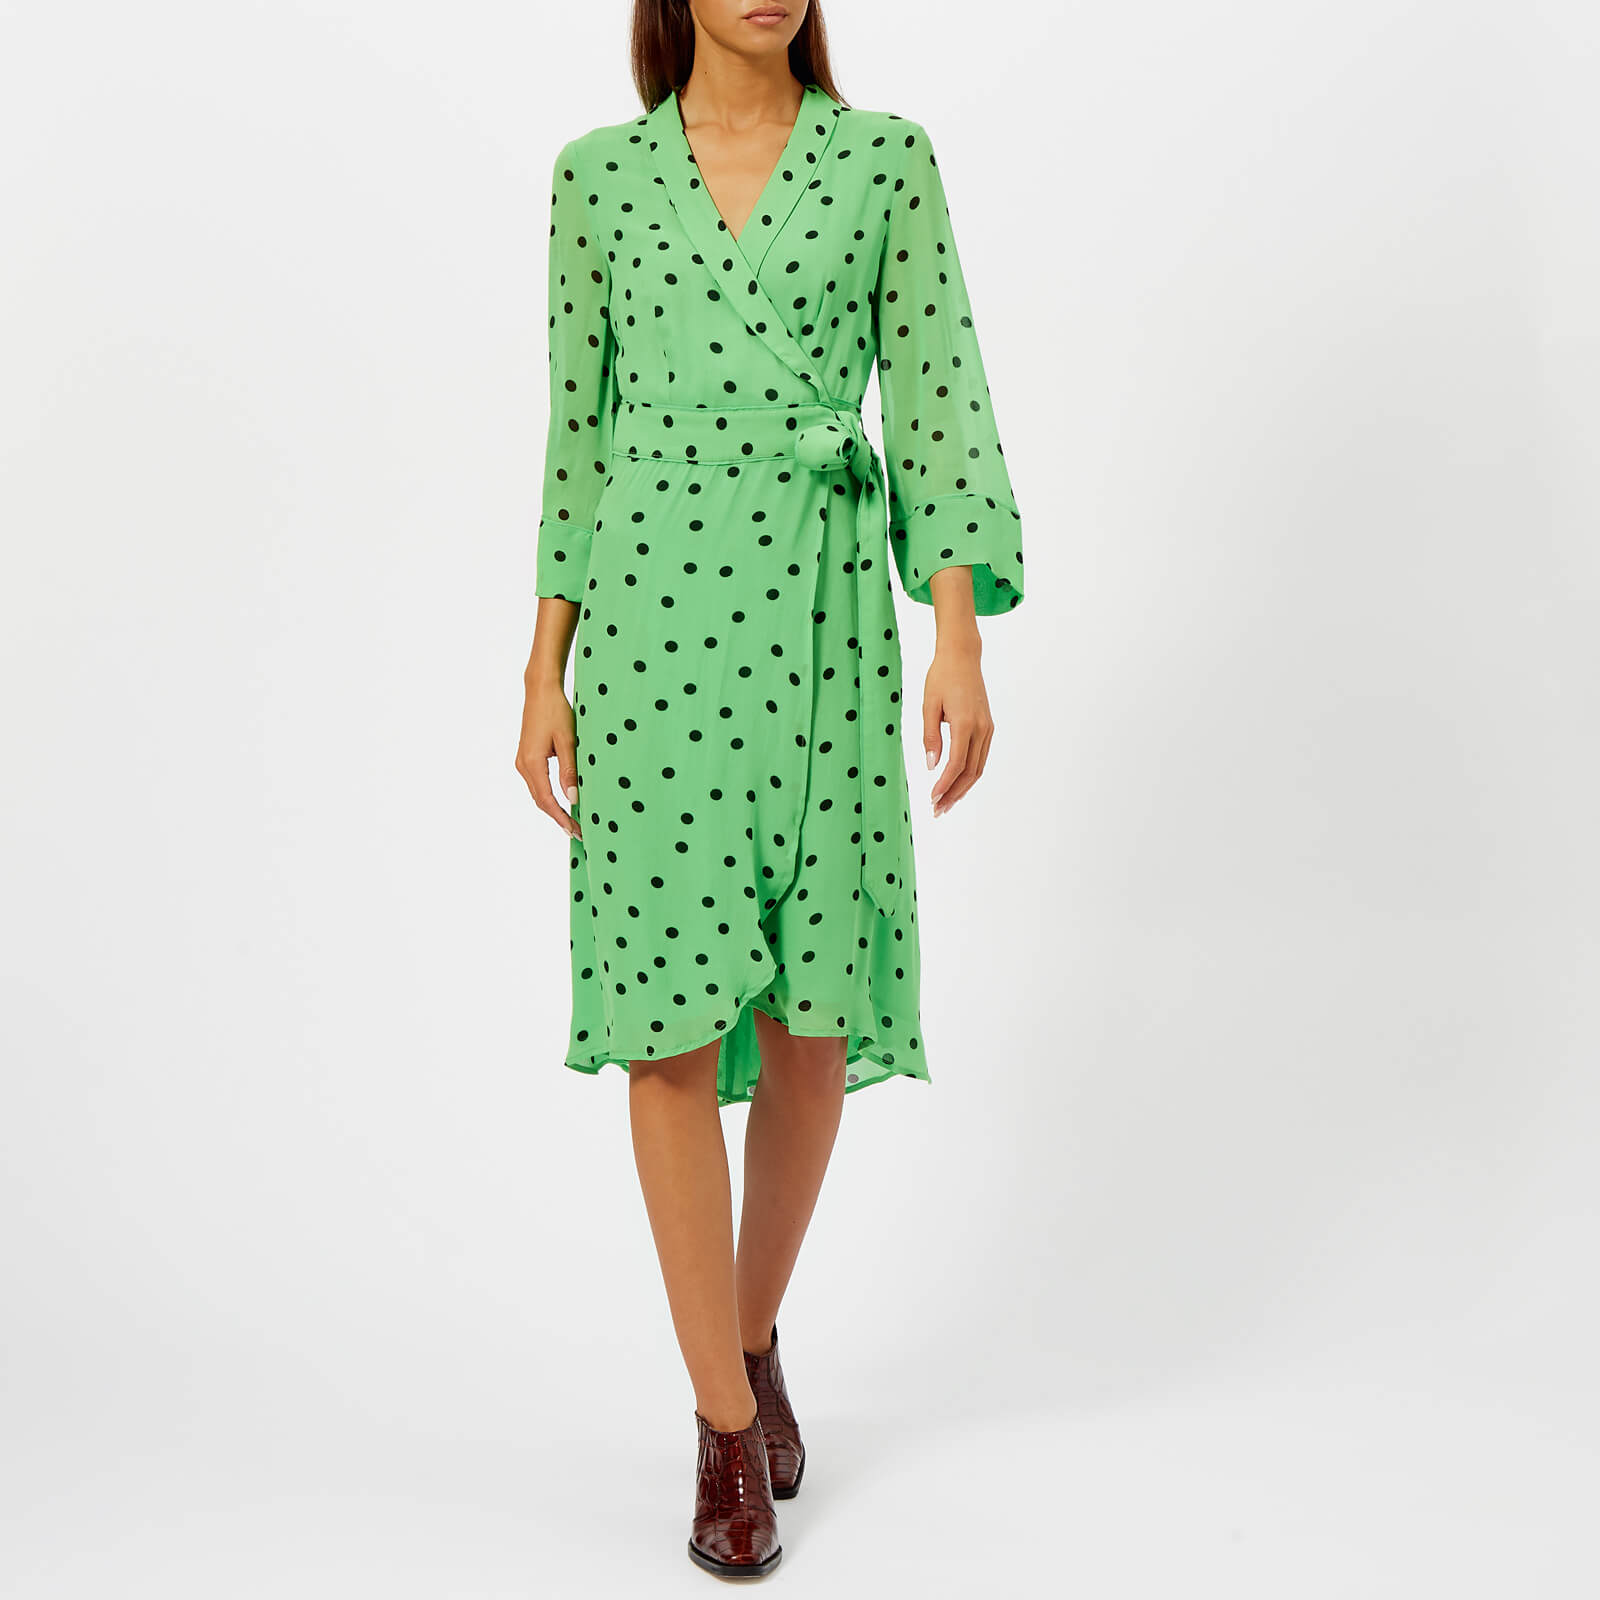 9c3922b4bdf0 Ganni Women's Dainty Georgette Dress - Classic Green - Free UK Delivery  over £50